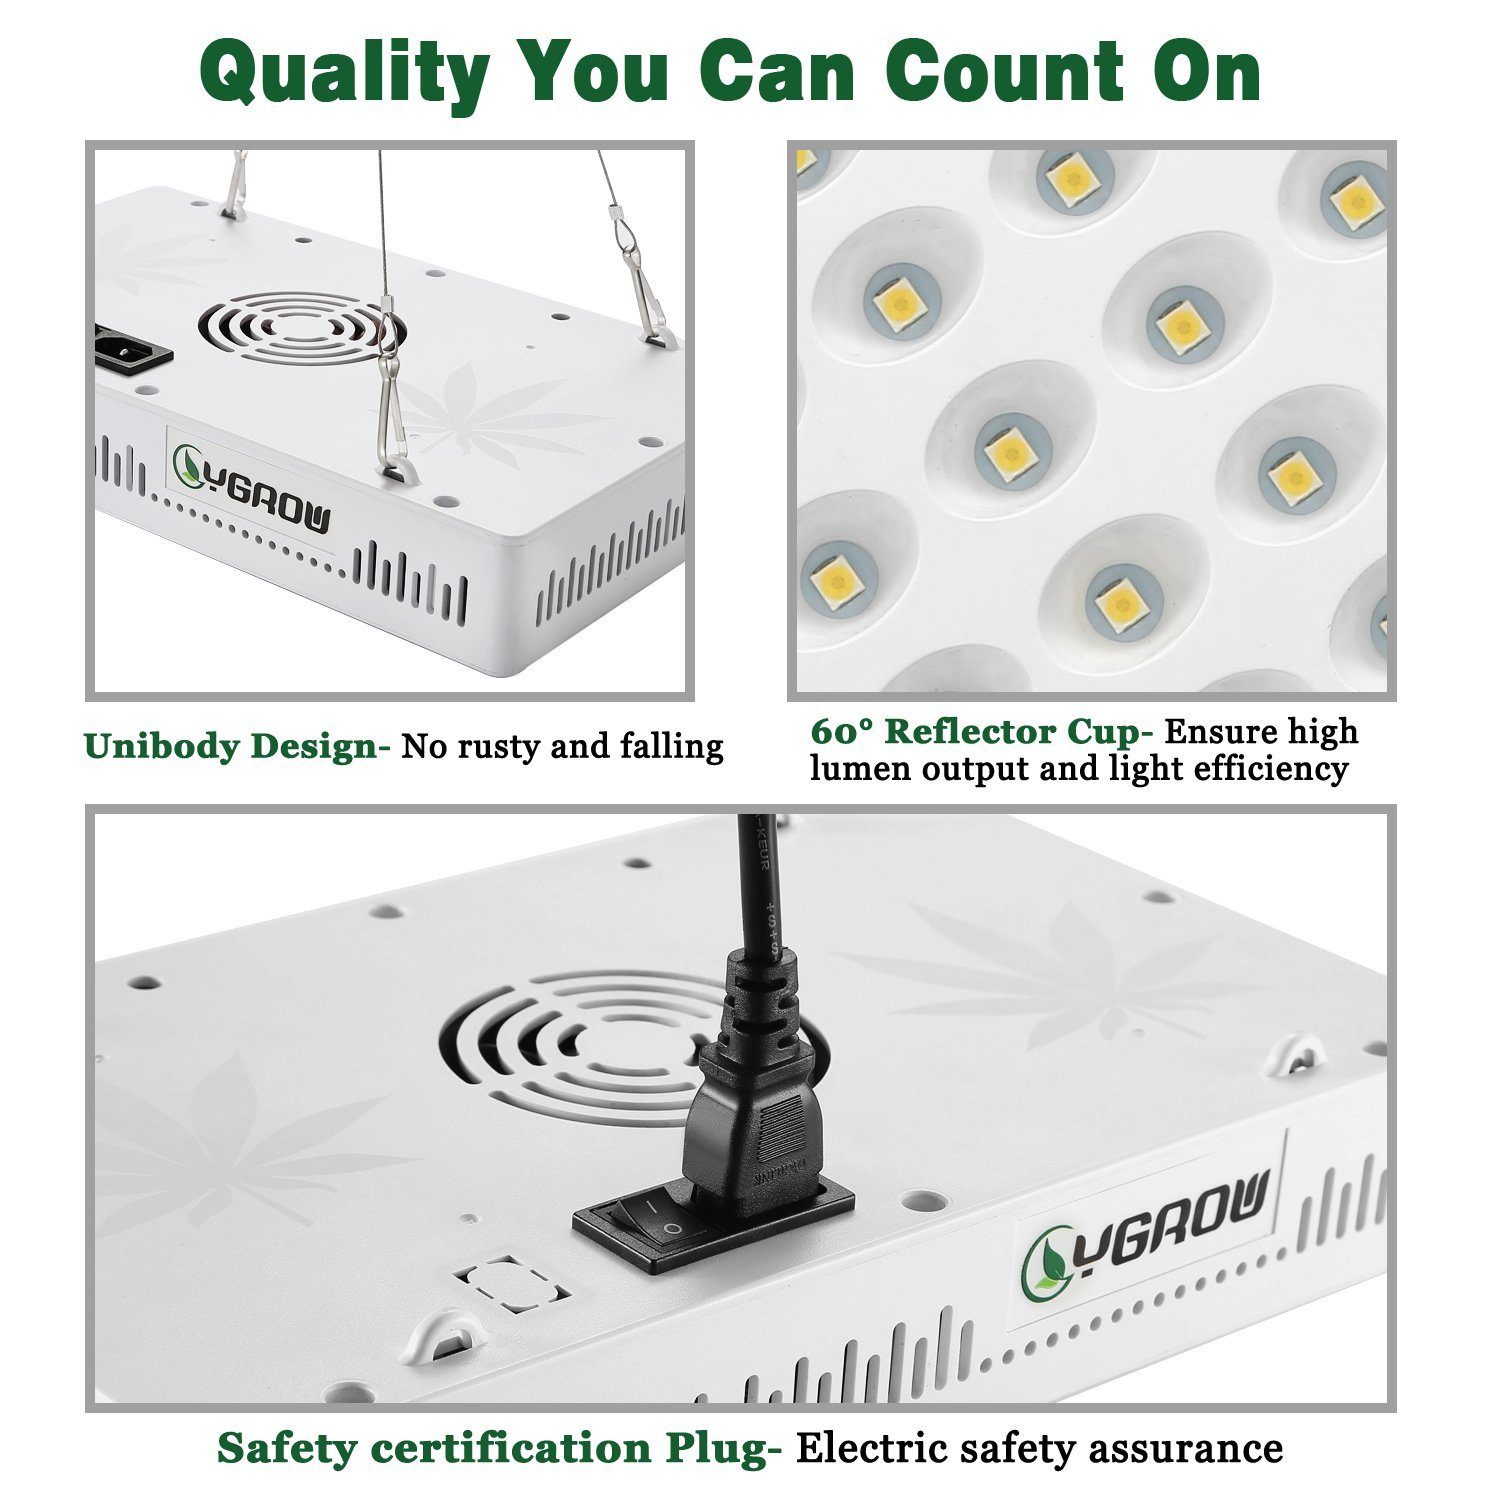 YGROW LED Grow Light Full Spectrum 600W,Reflector-Series Plant Grow Lights for Indoor Plants Veg and Flower with Heatproof Casing 3500K by YGROW (Image #8)